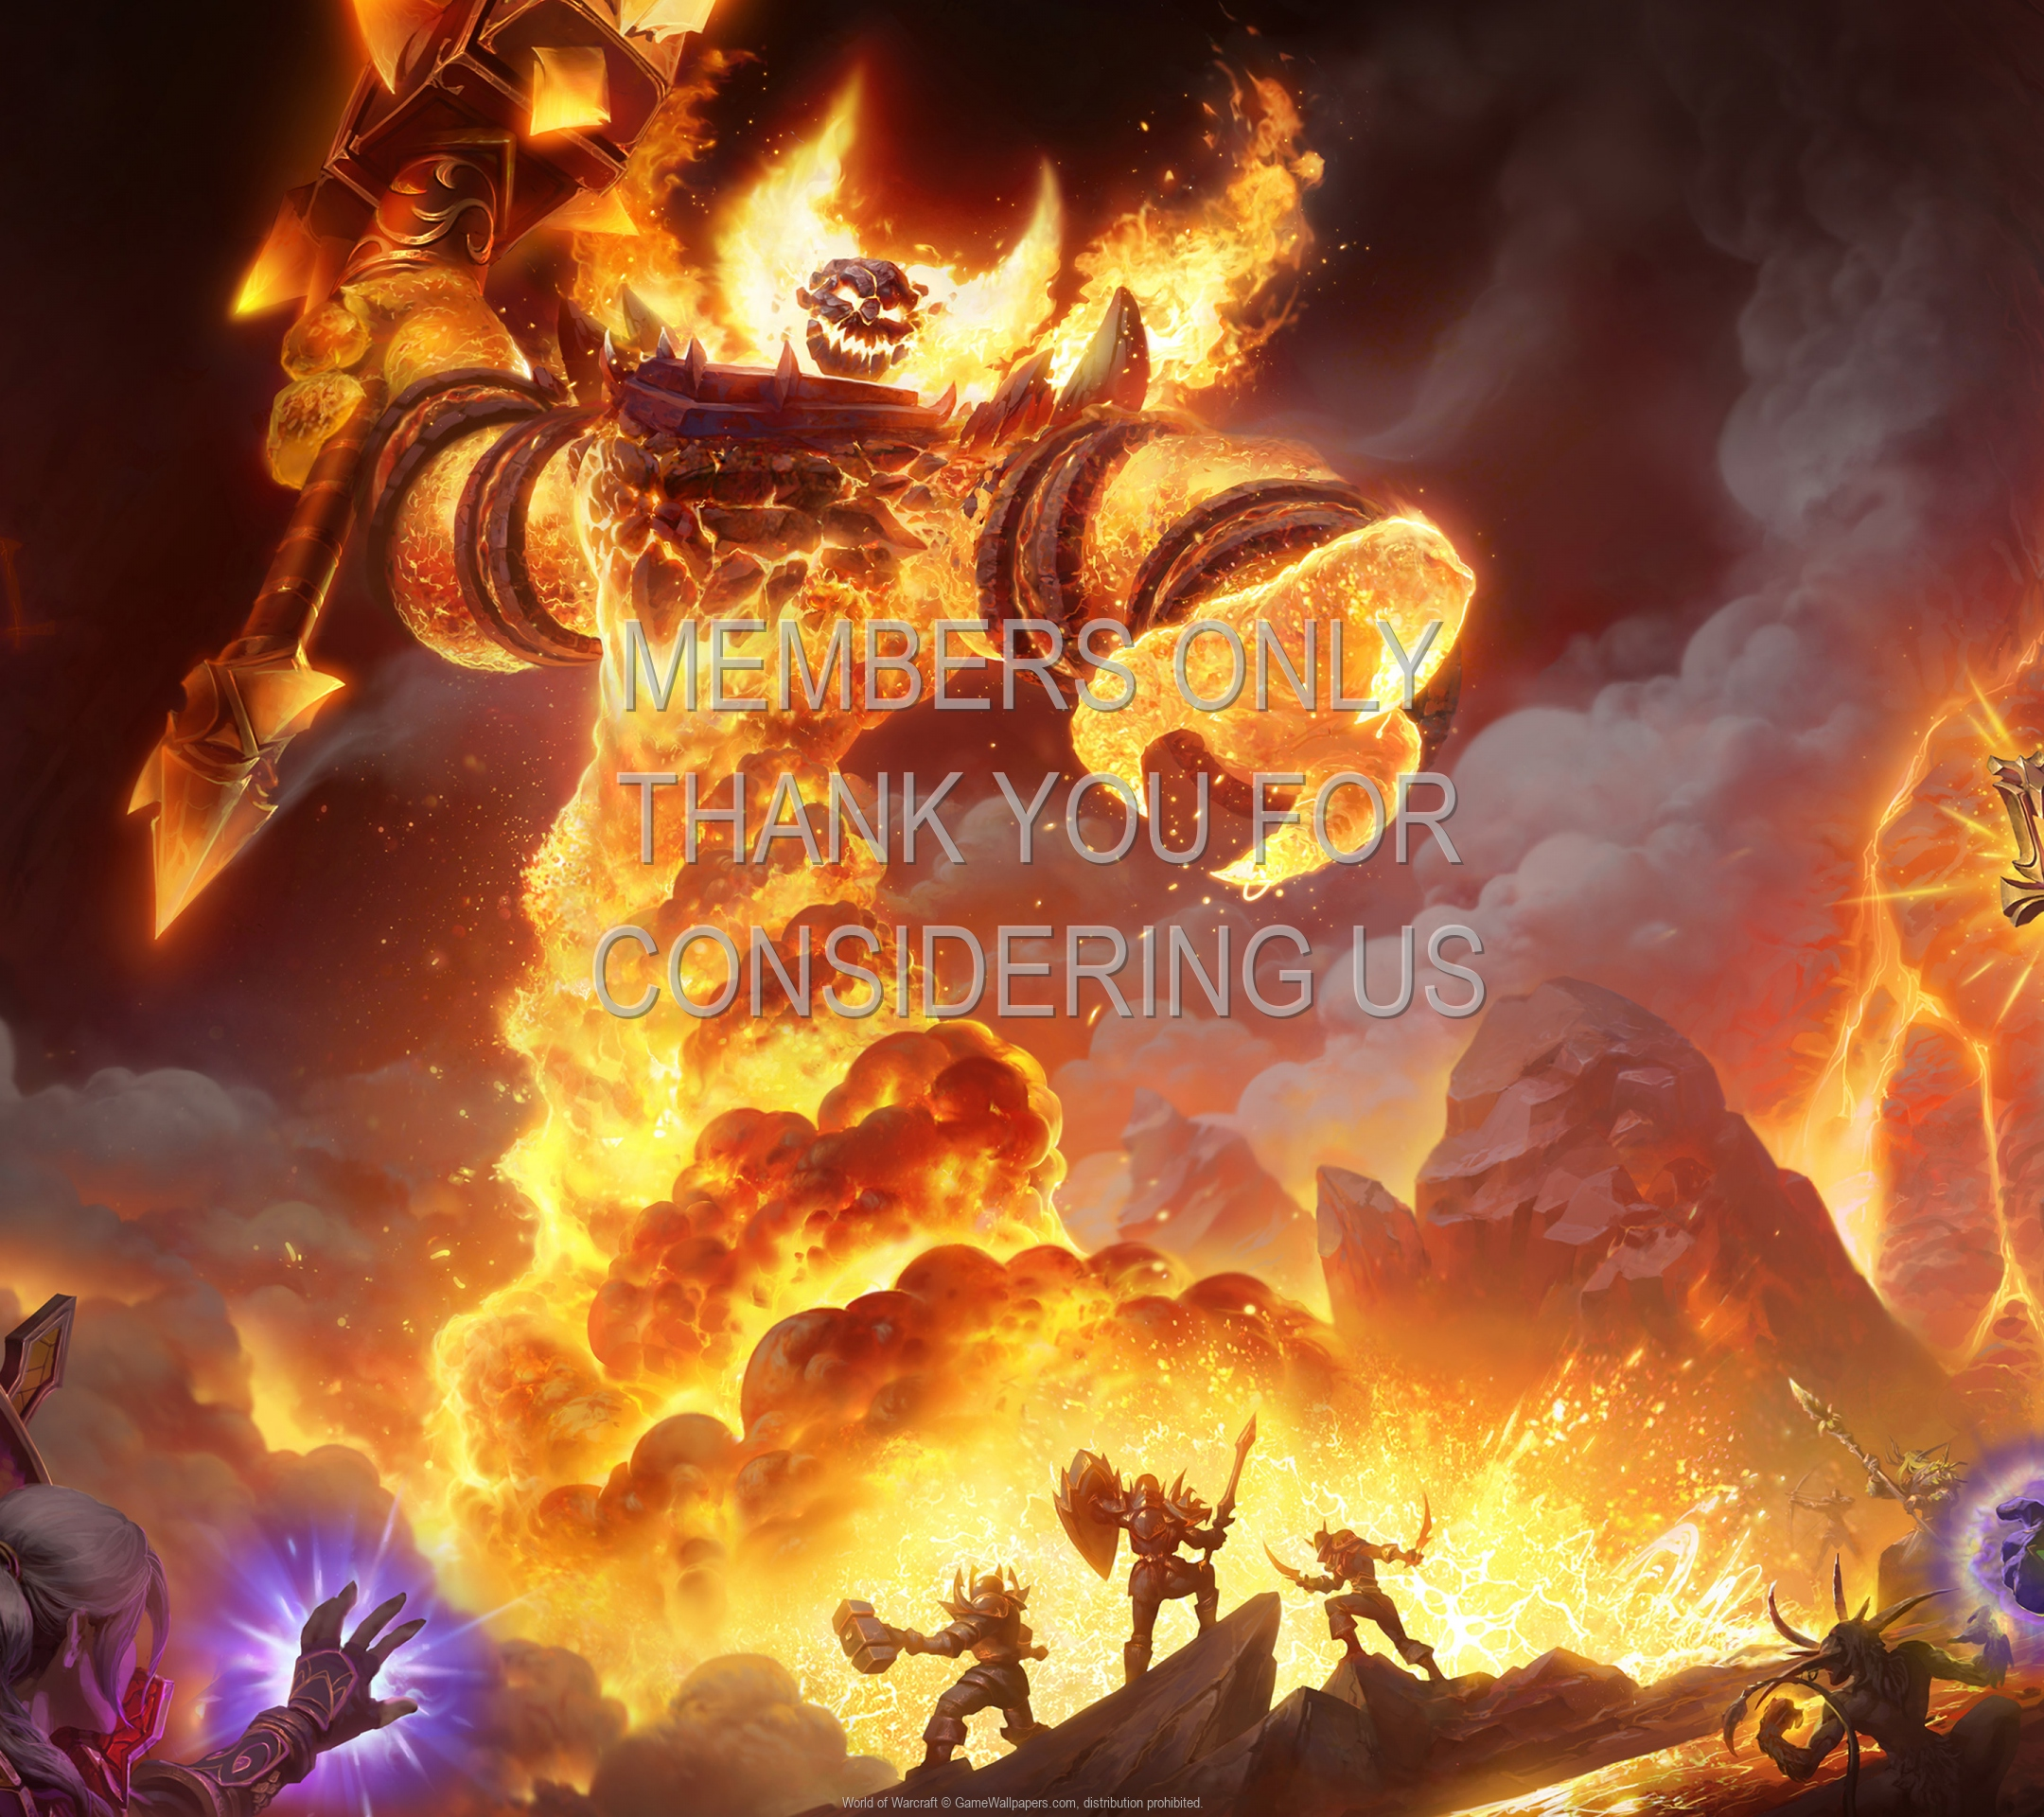 World of Warcraft 1920x1080 Mobile wallpaper or background 18